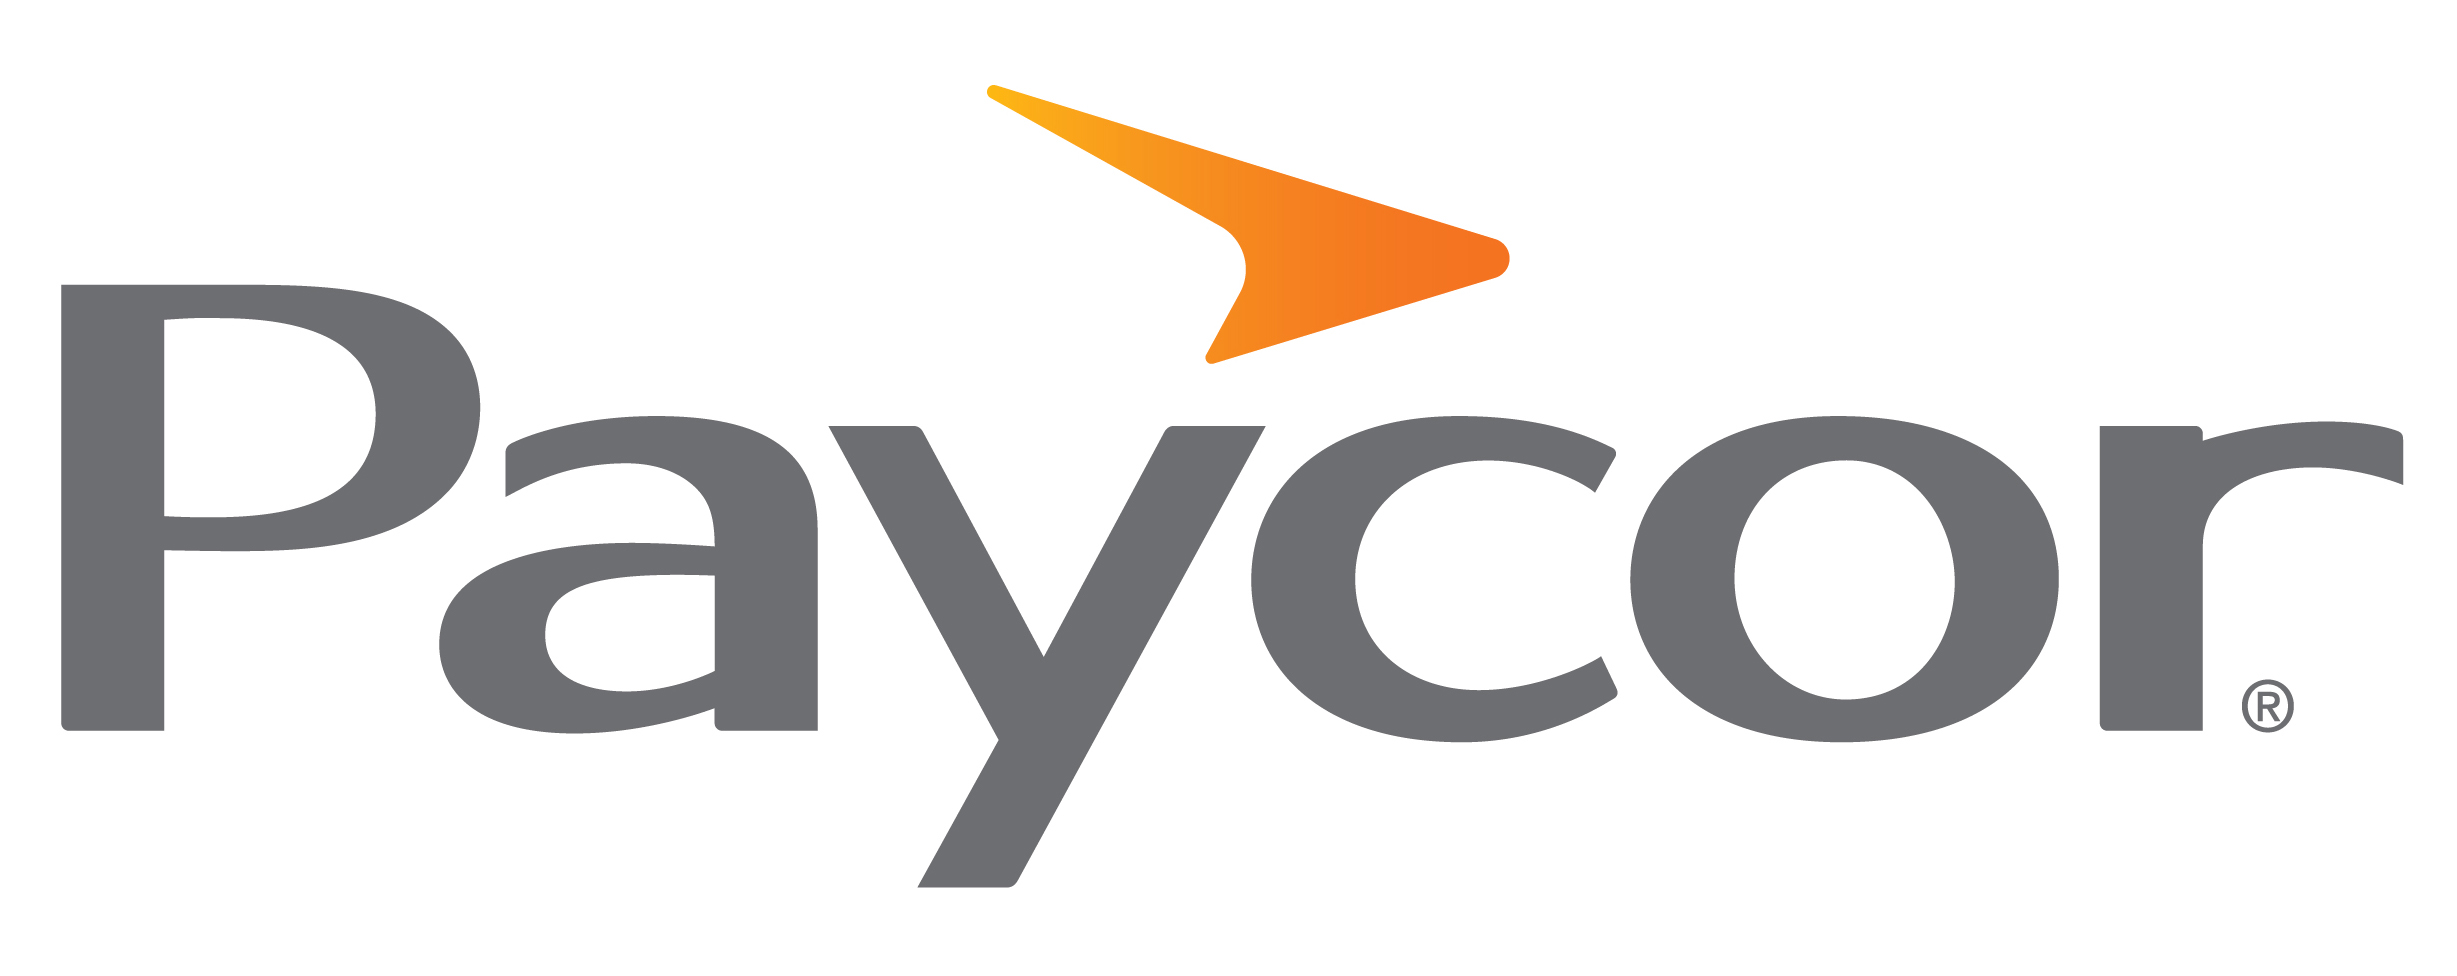 Paycor is a trusted partner to more than 31,000 small and medium-sized businesses. Known for delivering modern, intuitive recruiting, HR and payroll solutions, Paycor partners with businesses to optimize the management of their most valuable asset--their people. www.paycor.com